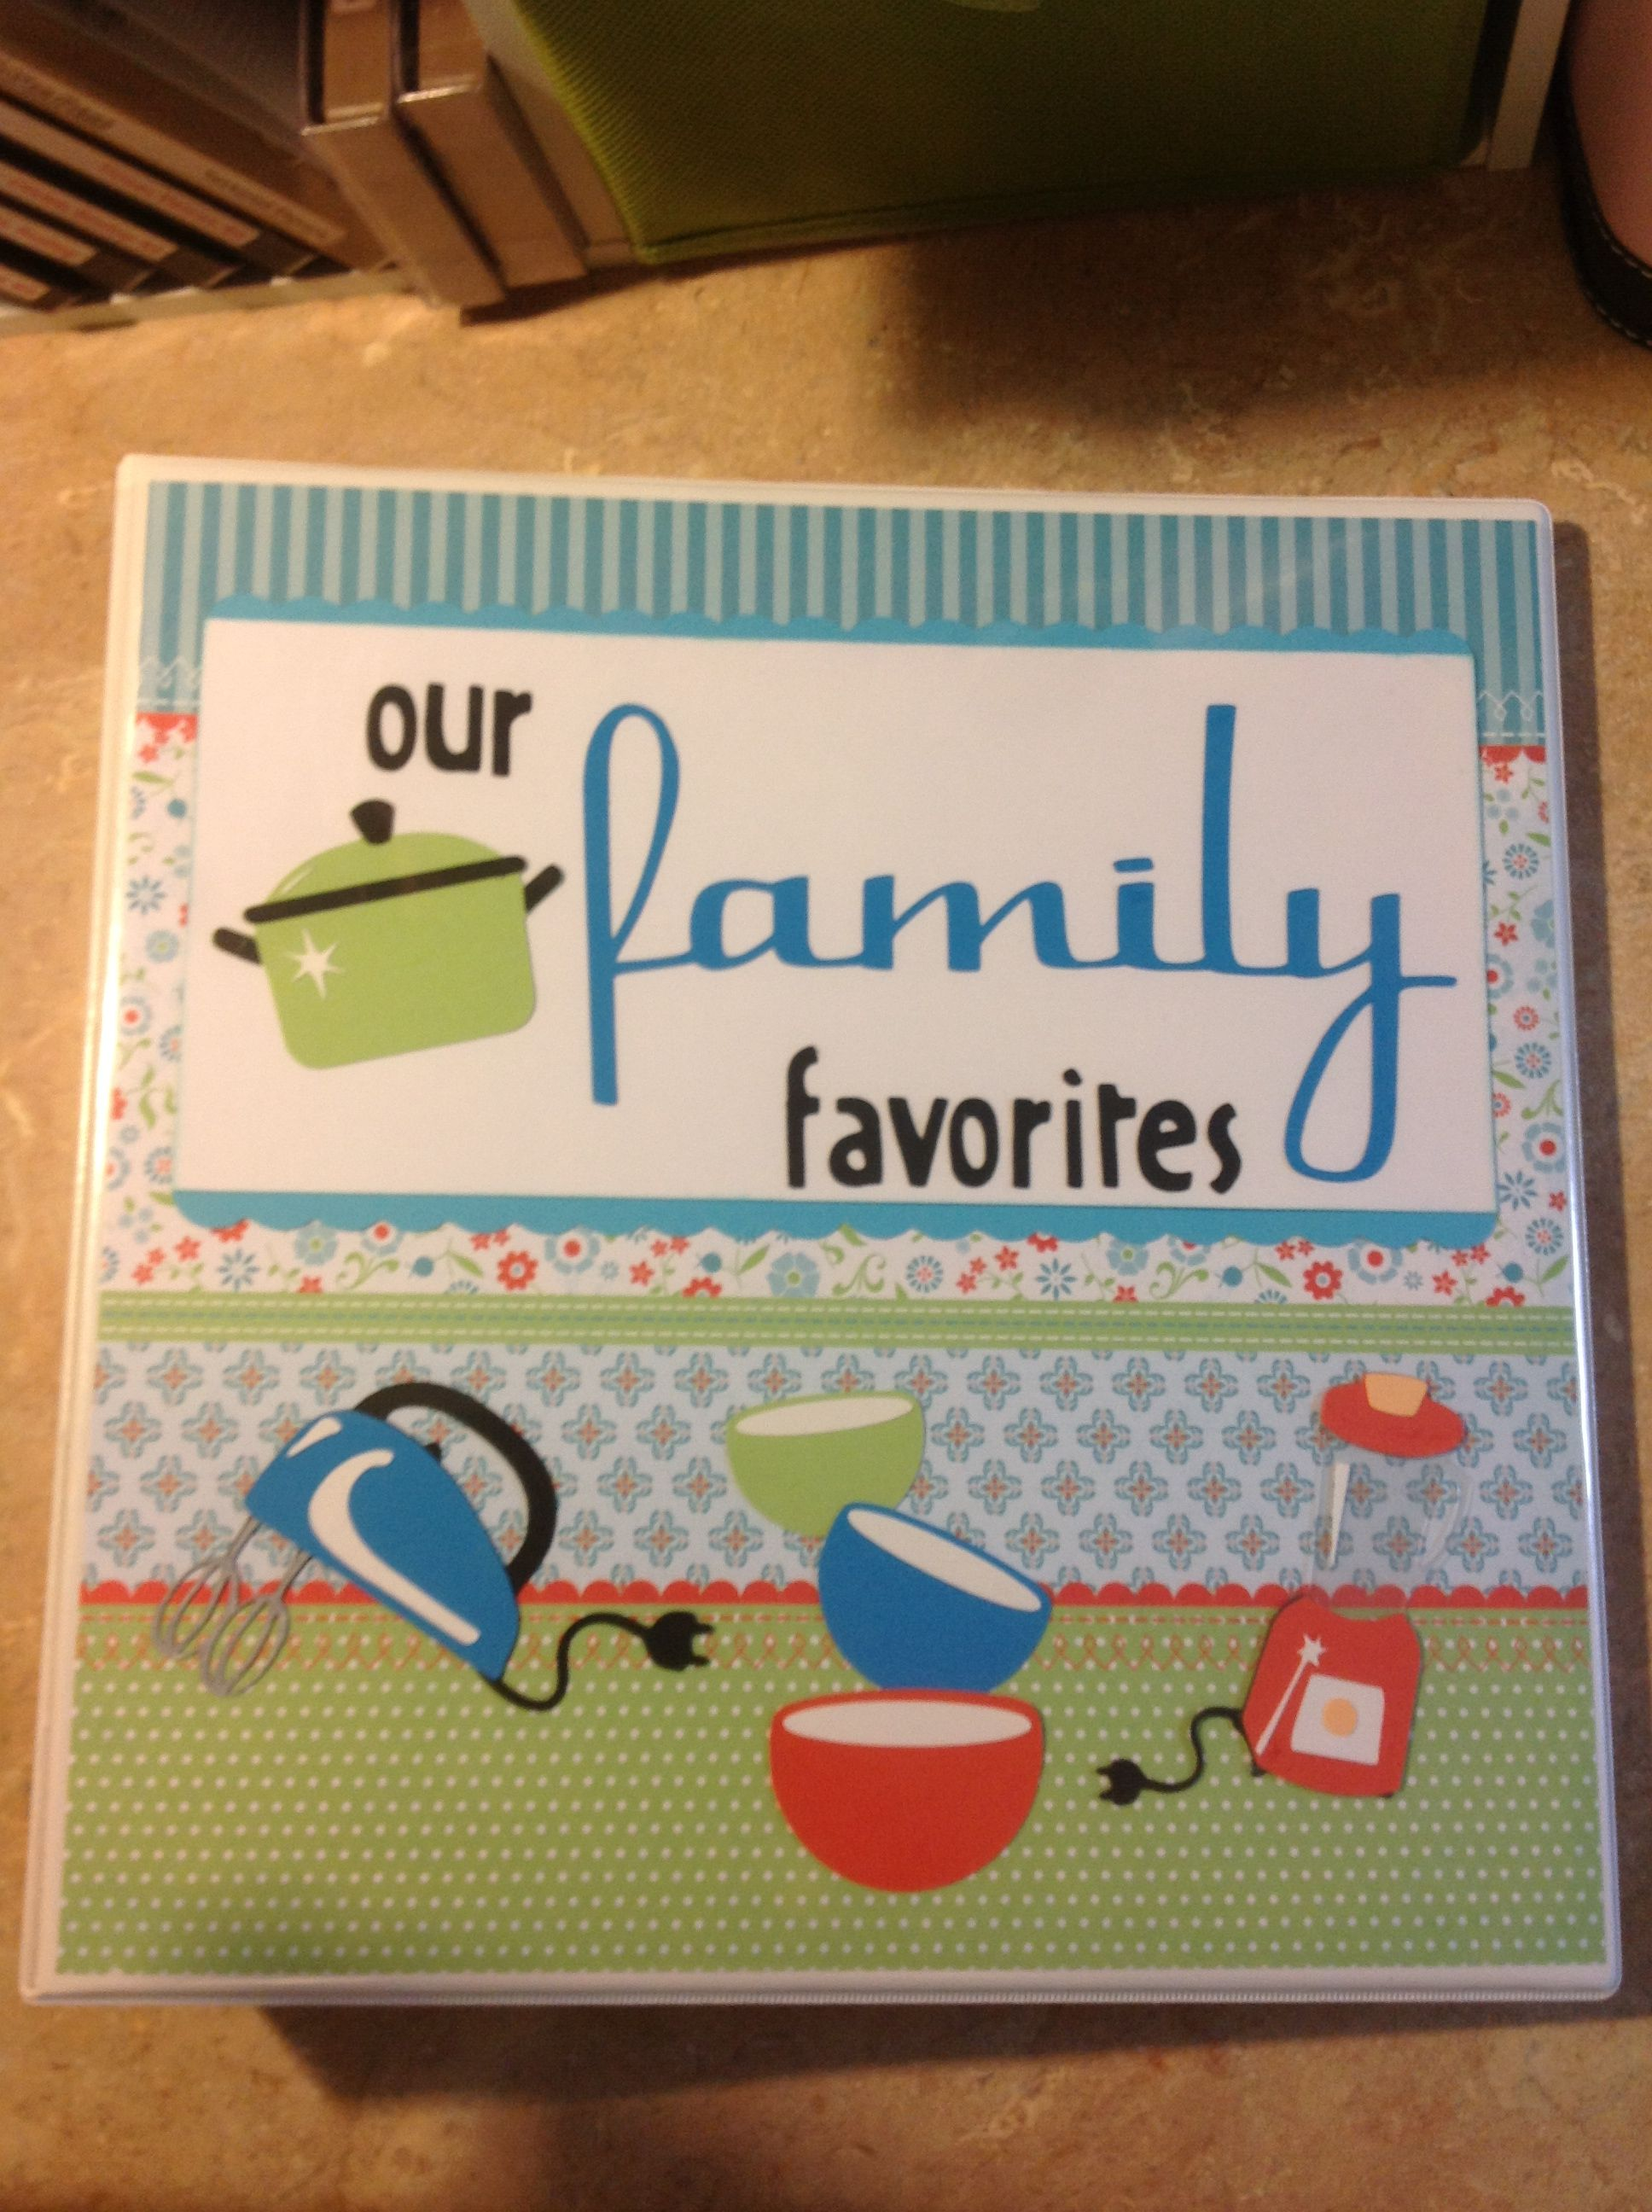 How to make scrapbook binder - Cricut From My Kitchen Great Idea To Make Recipe Binder Throw Out All The